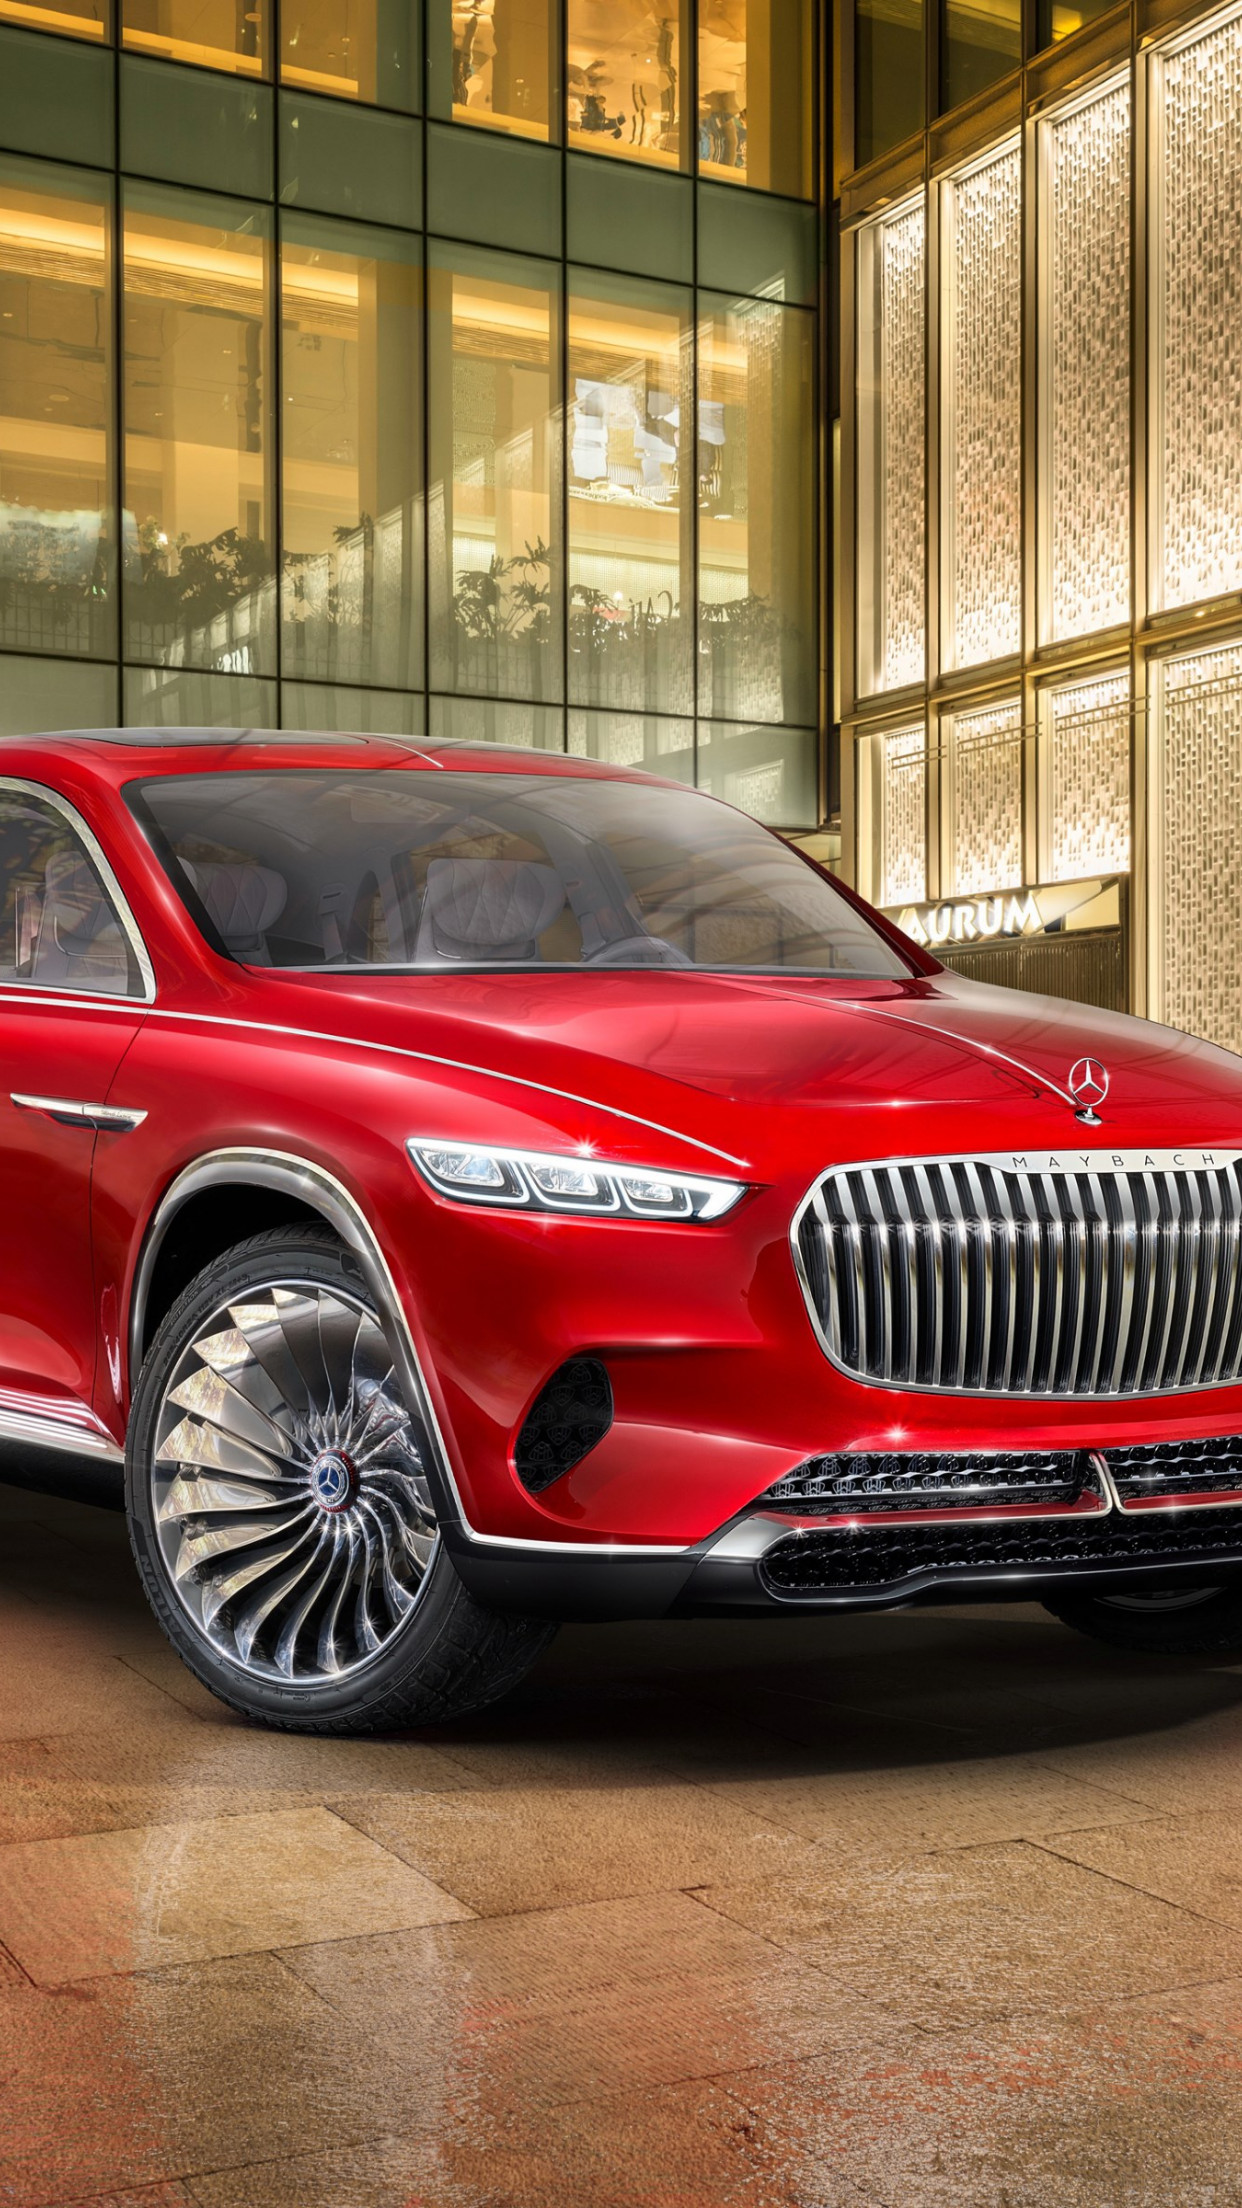 The Vision Mercedes Maybach Ultimate Luxury | 1242x2208 wallpaper